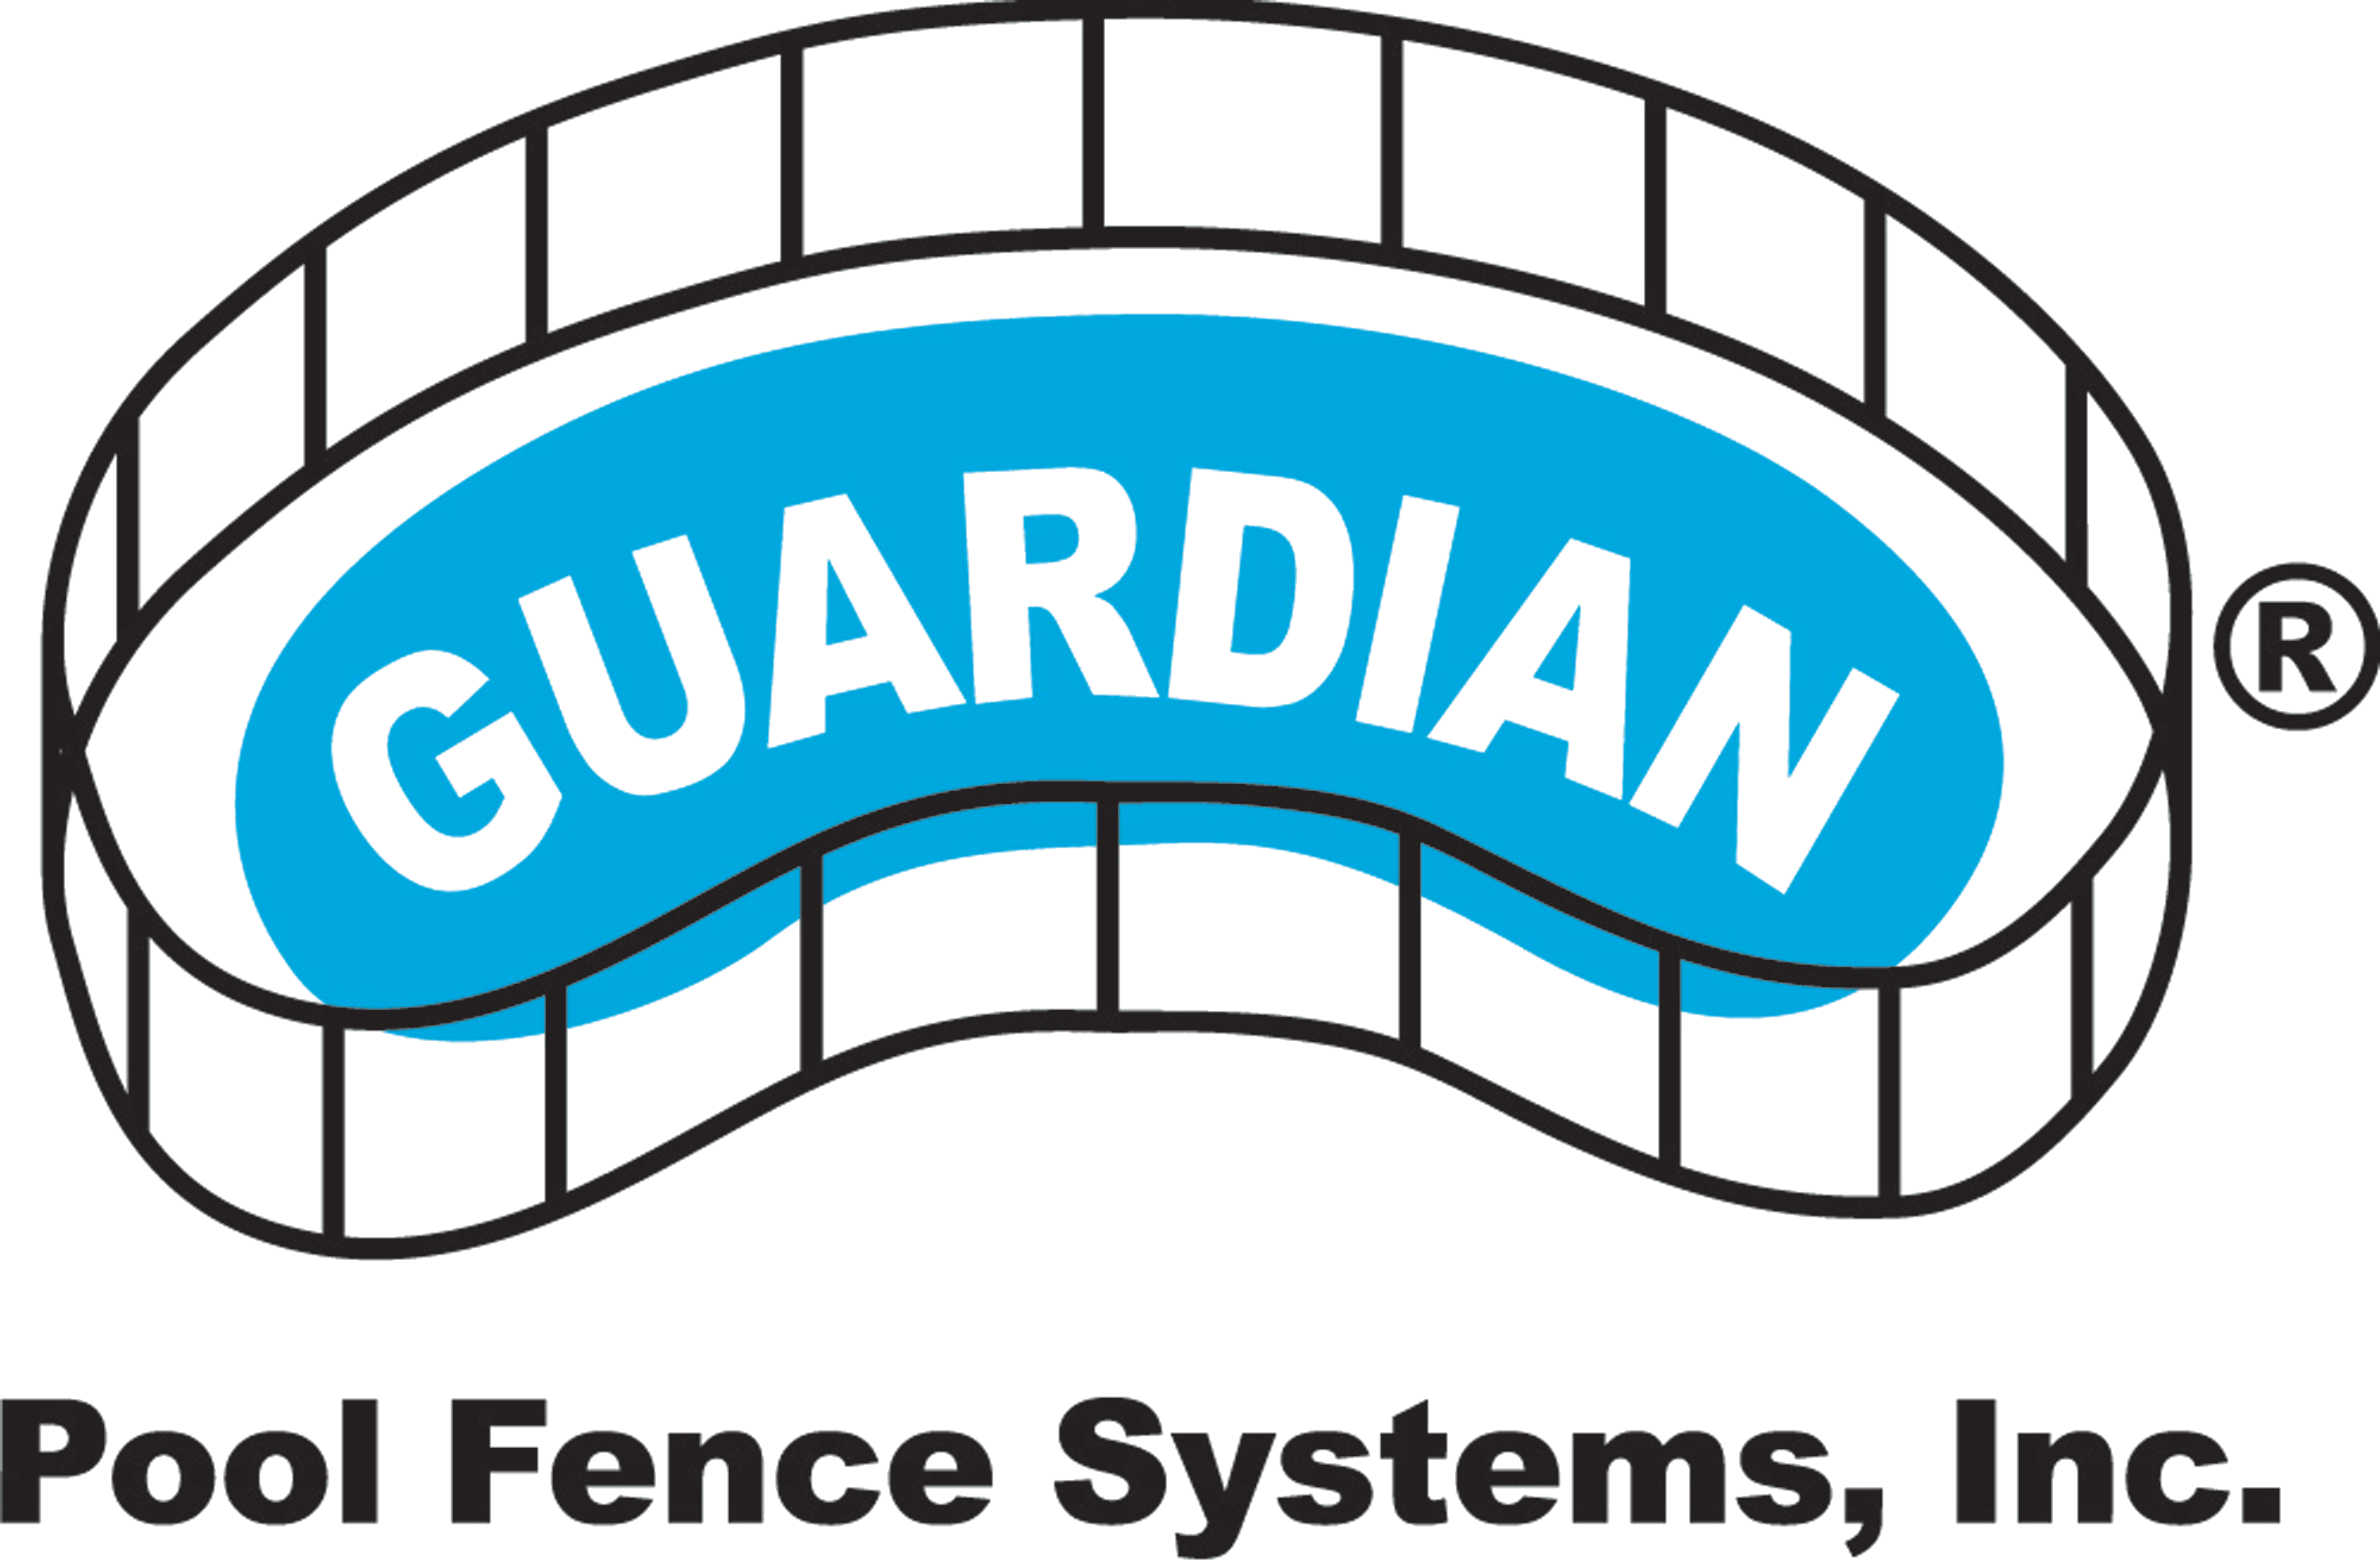 Guardian Pool Fence Systems, Inc in Van Nuys, CA. Polyvinyl coated removable polyester mesh swimming pool safety fencing with climb-resistant, self-closing gate.